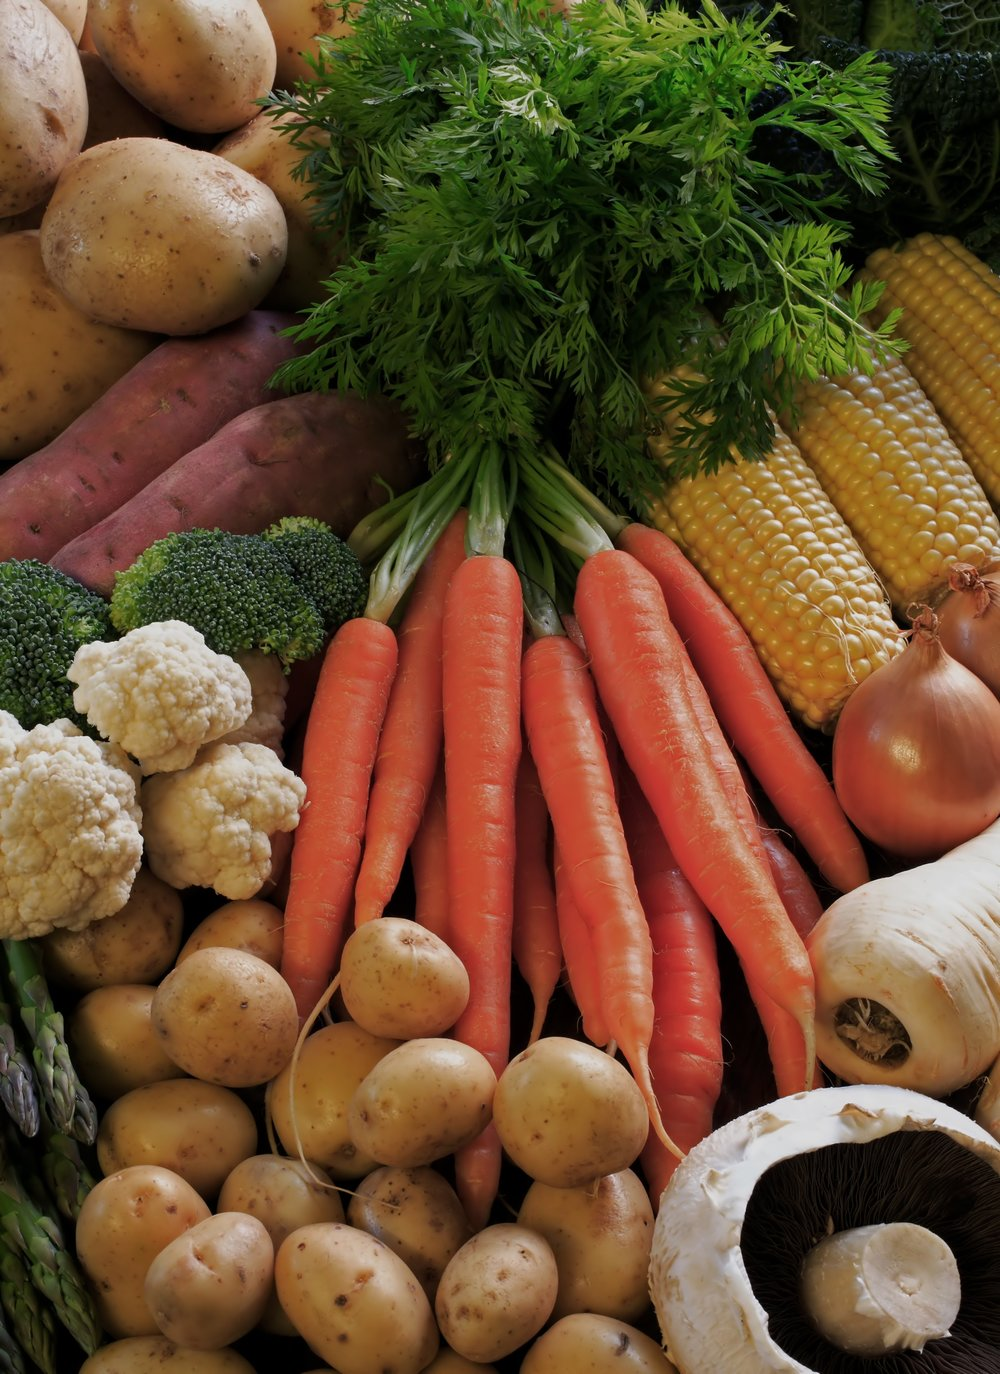 bigstock-Organic-Vegetables-1174895.jpg